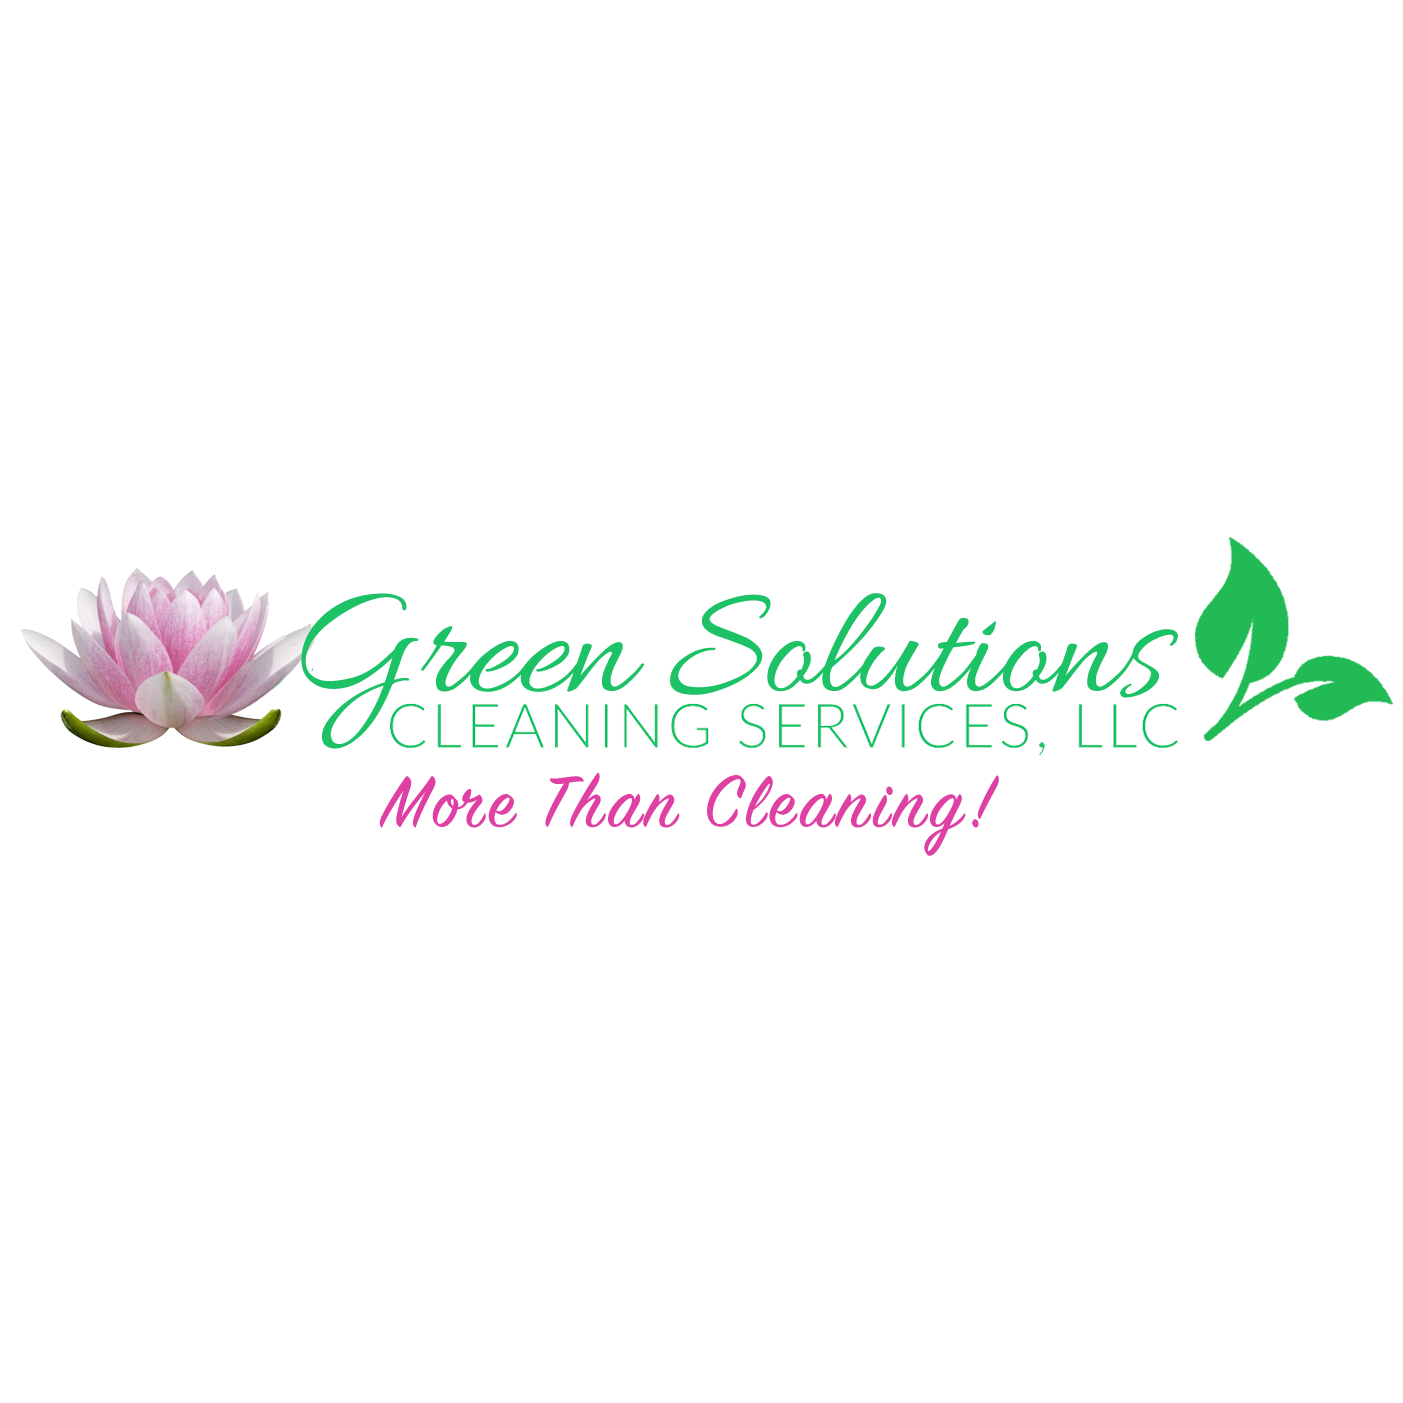 Green Solutions Cleaning Services